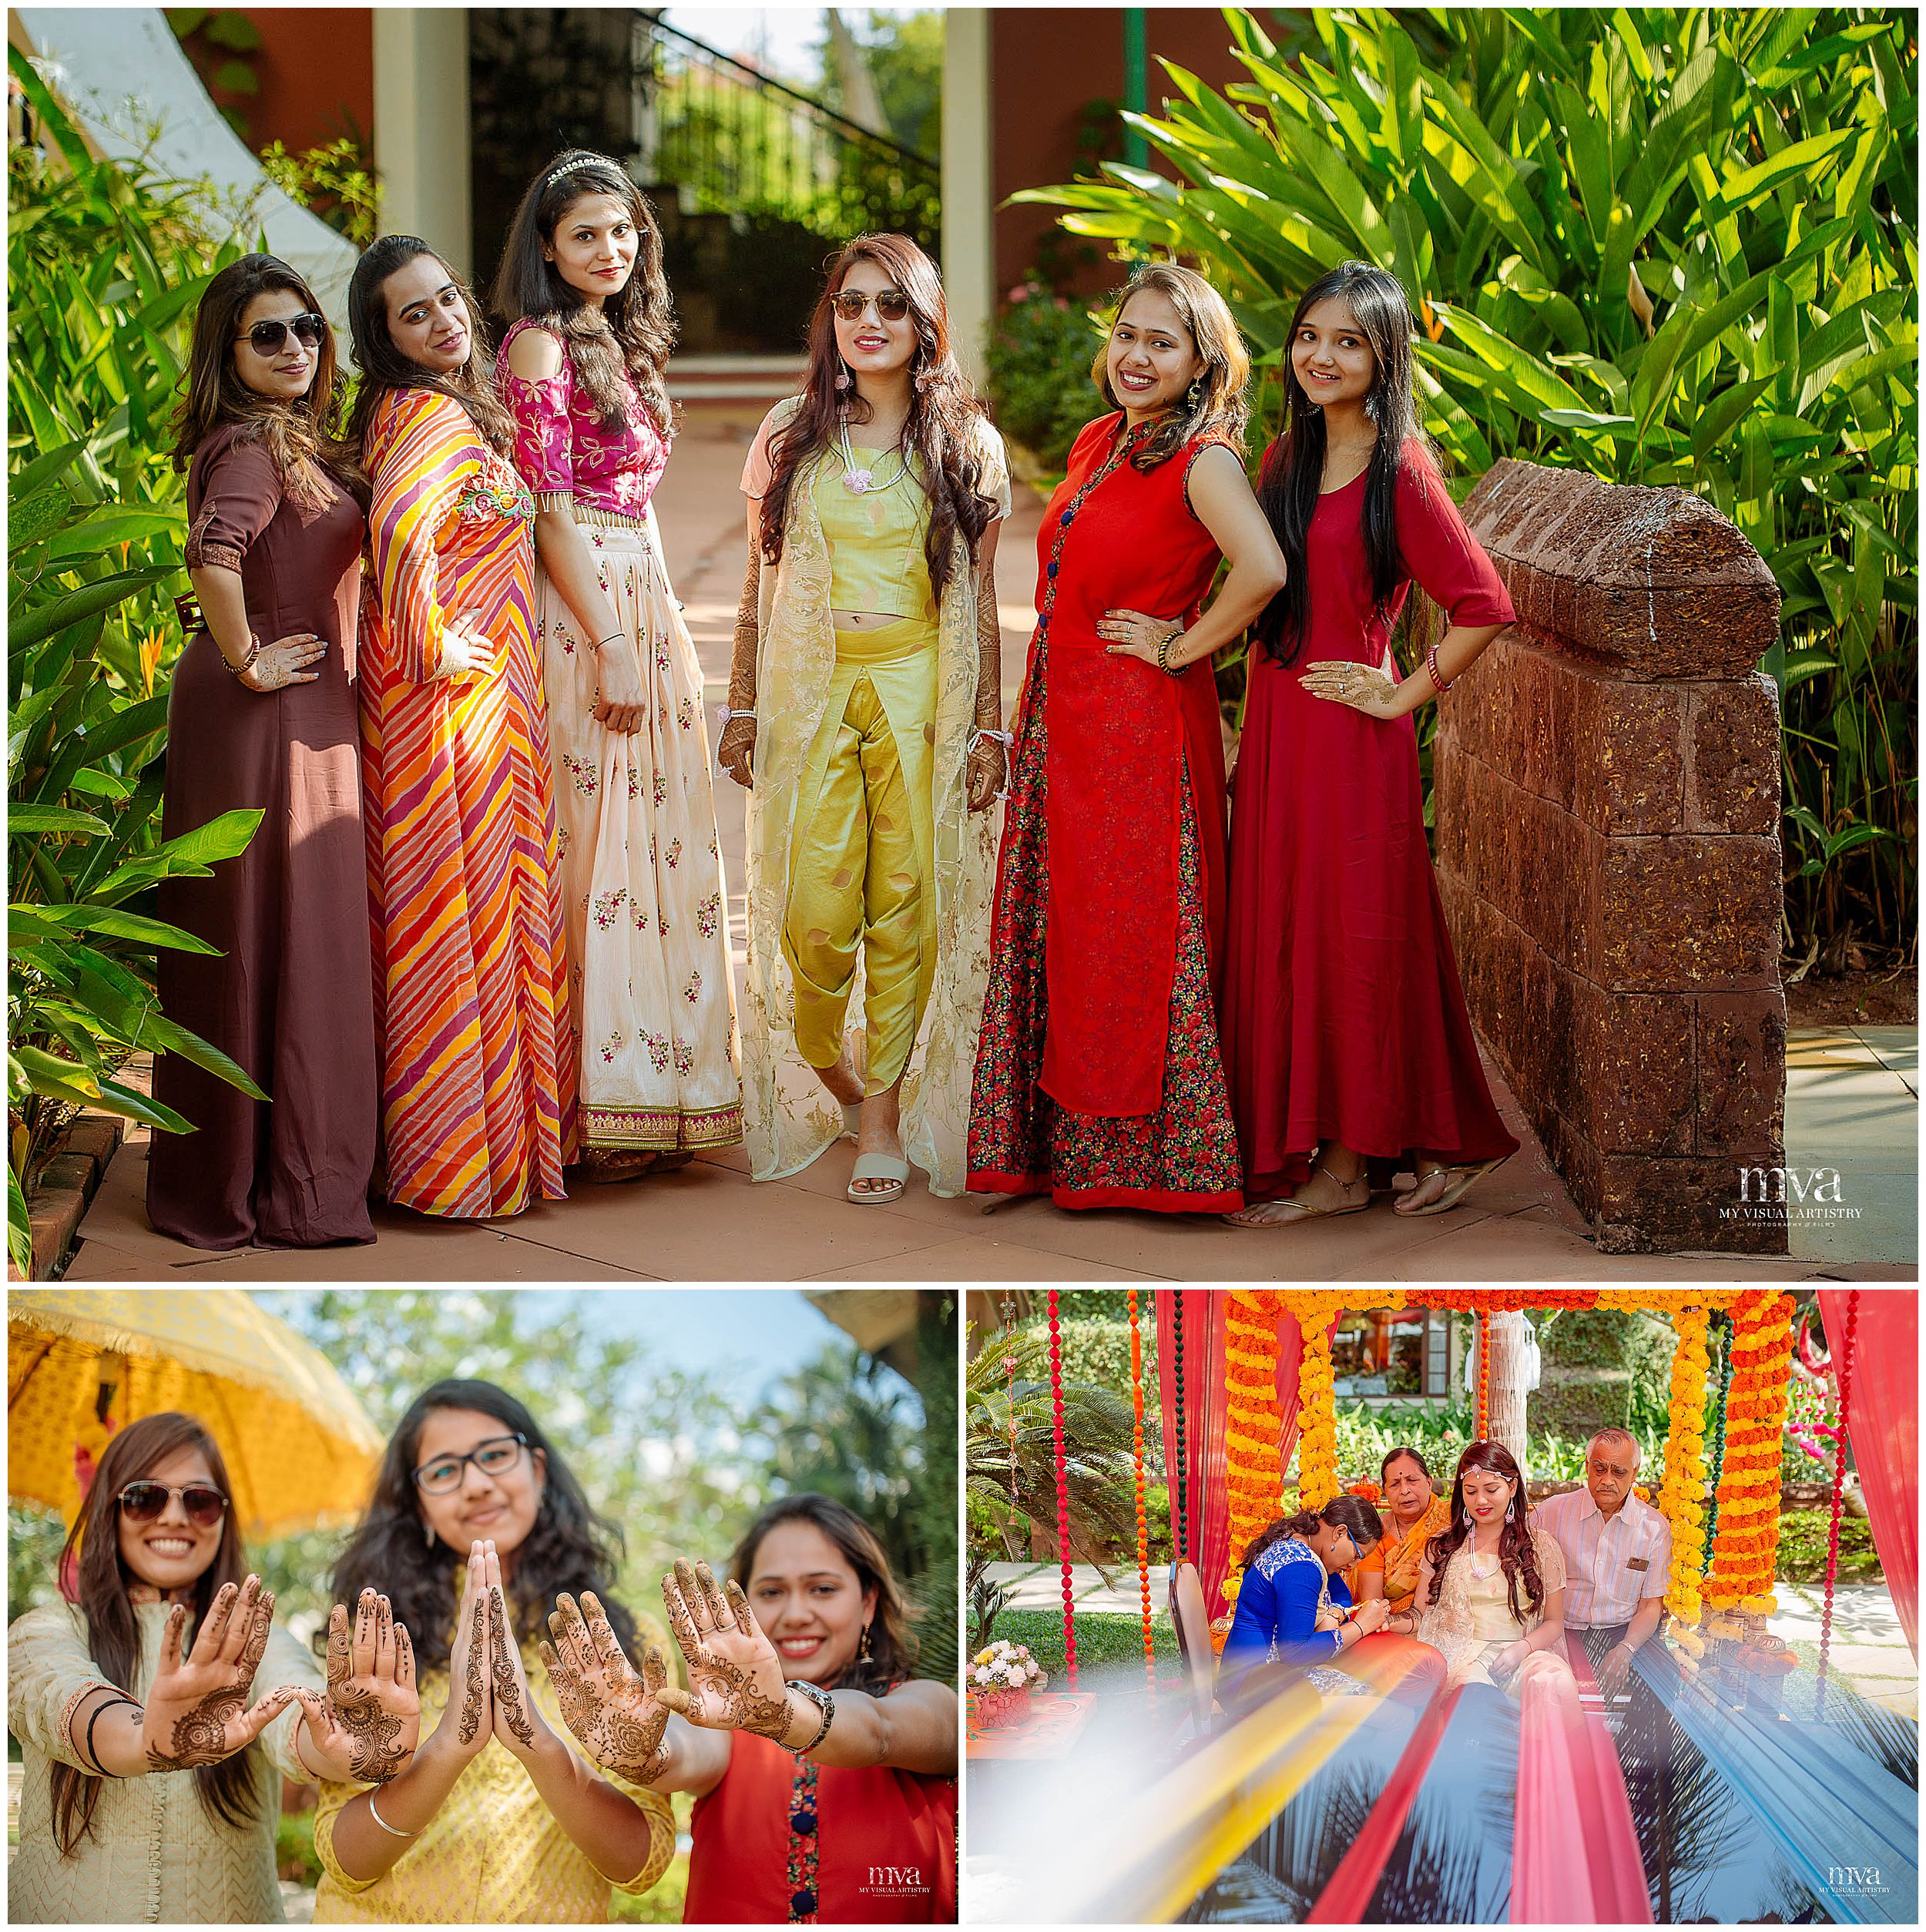 ROHIT_SANIYA_MYVISUALARTISTRY__WEDDING_PHOTOGRAPHER_GOA_DESTINATION_CAREVELA_RESORT_0004.jpg